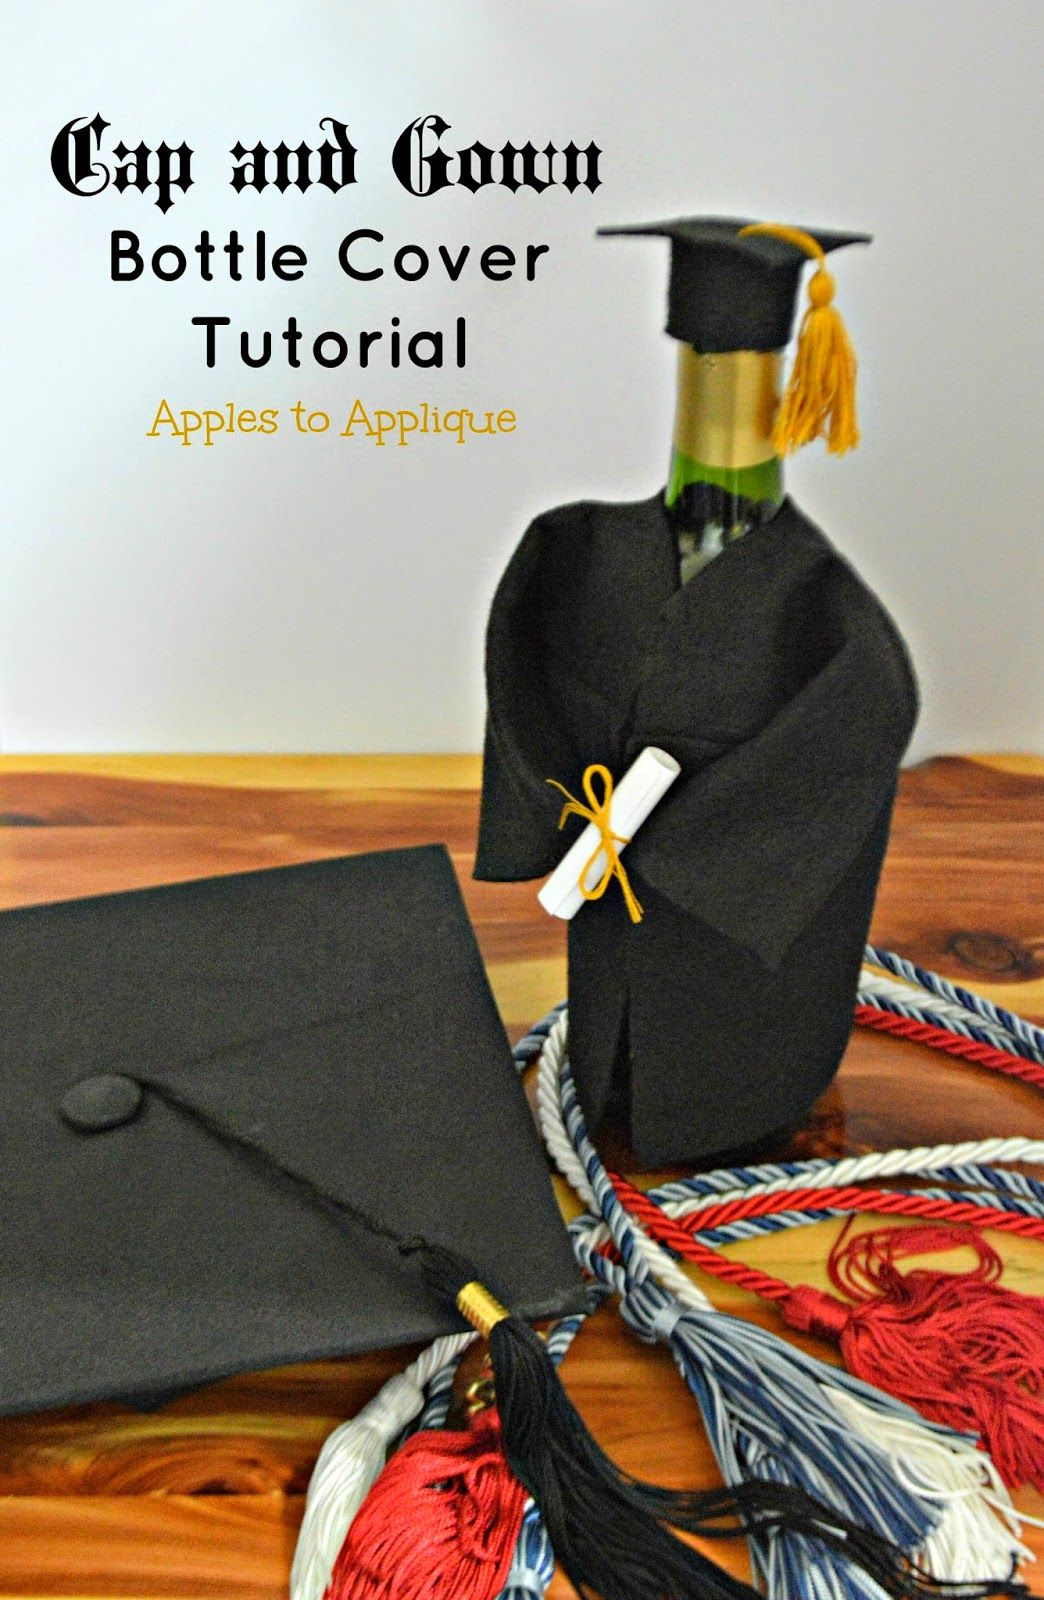 College Graduation Gift Ideas For Son: Cap And Gown Wine/Champagne Bottle Cover Tutorial